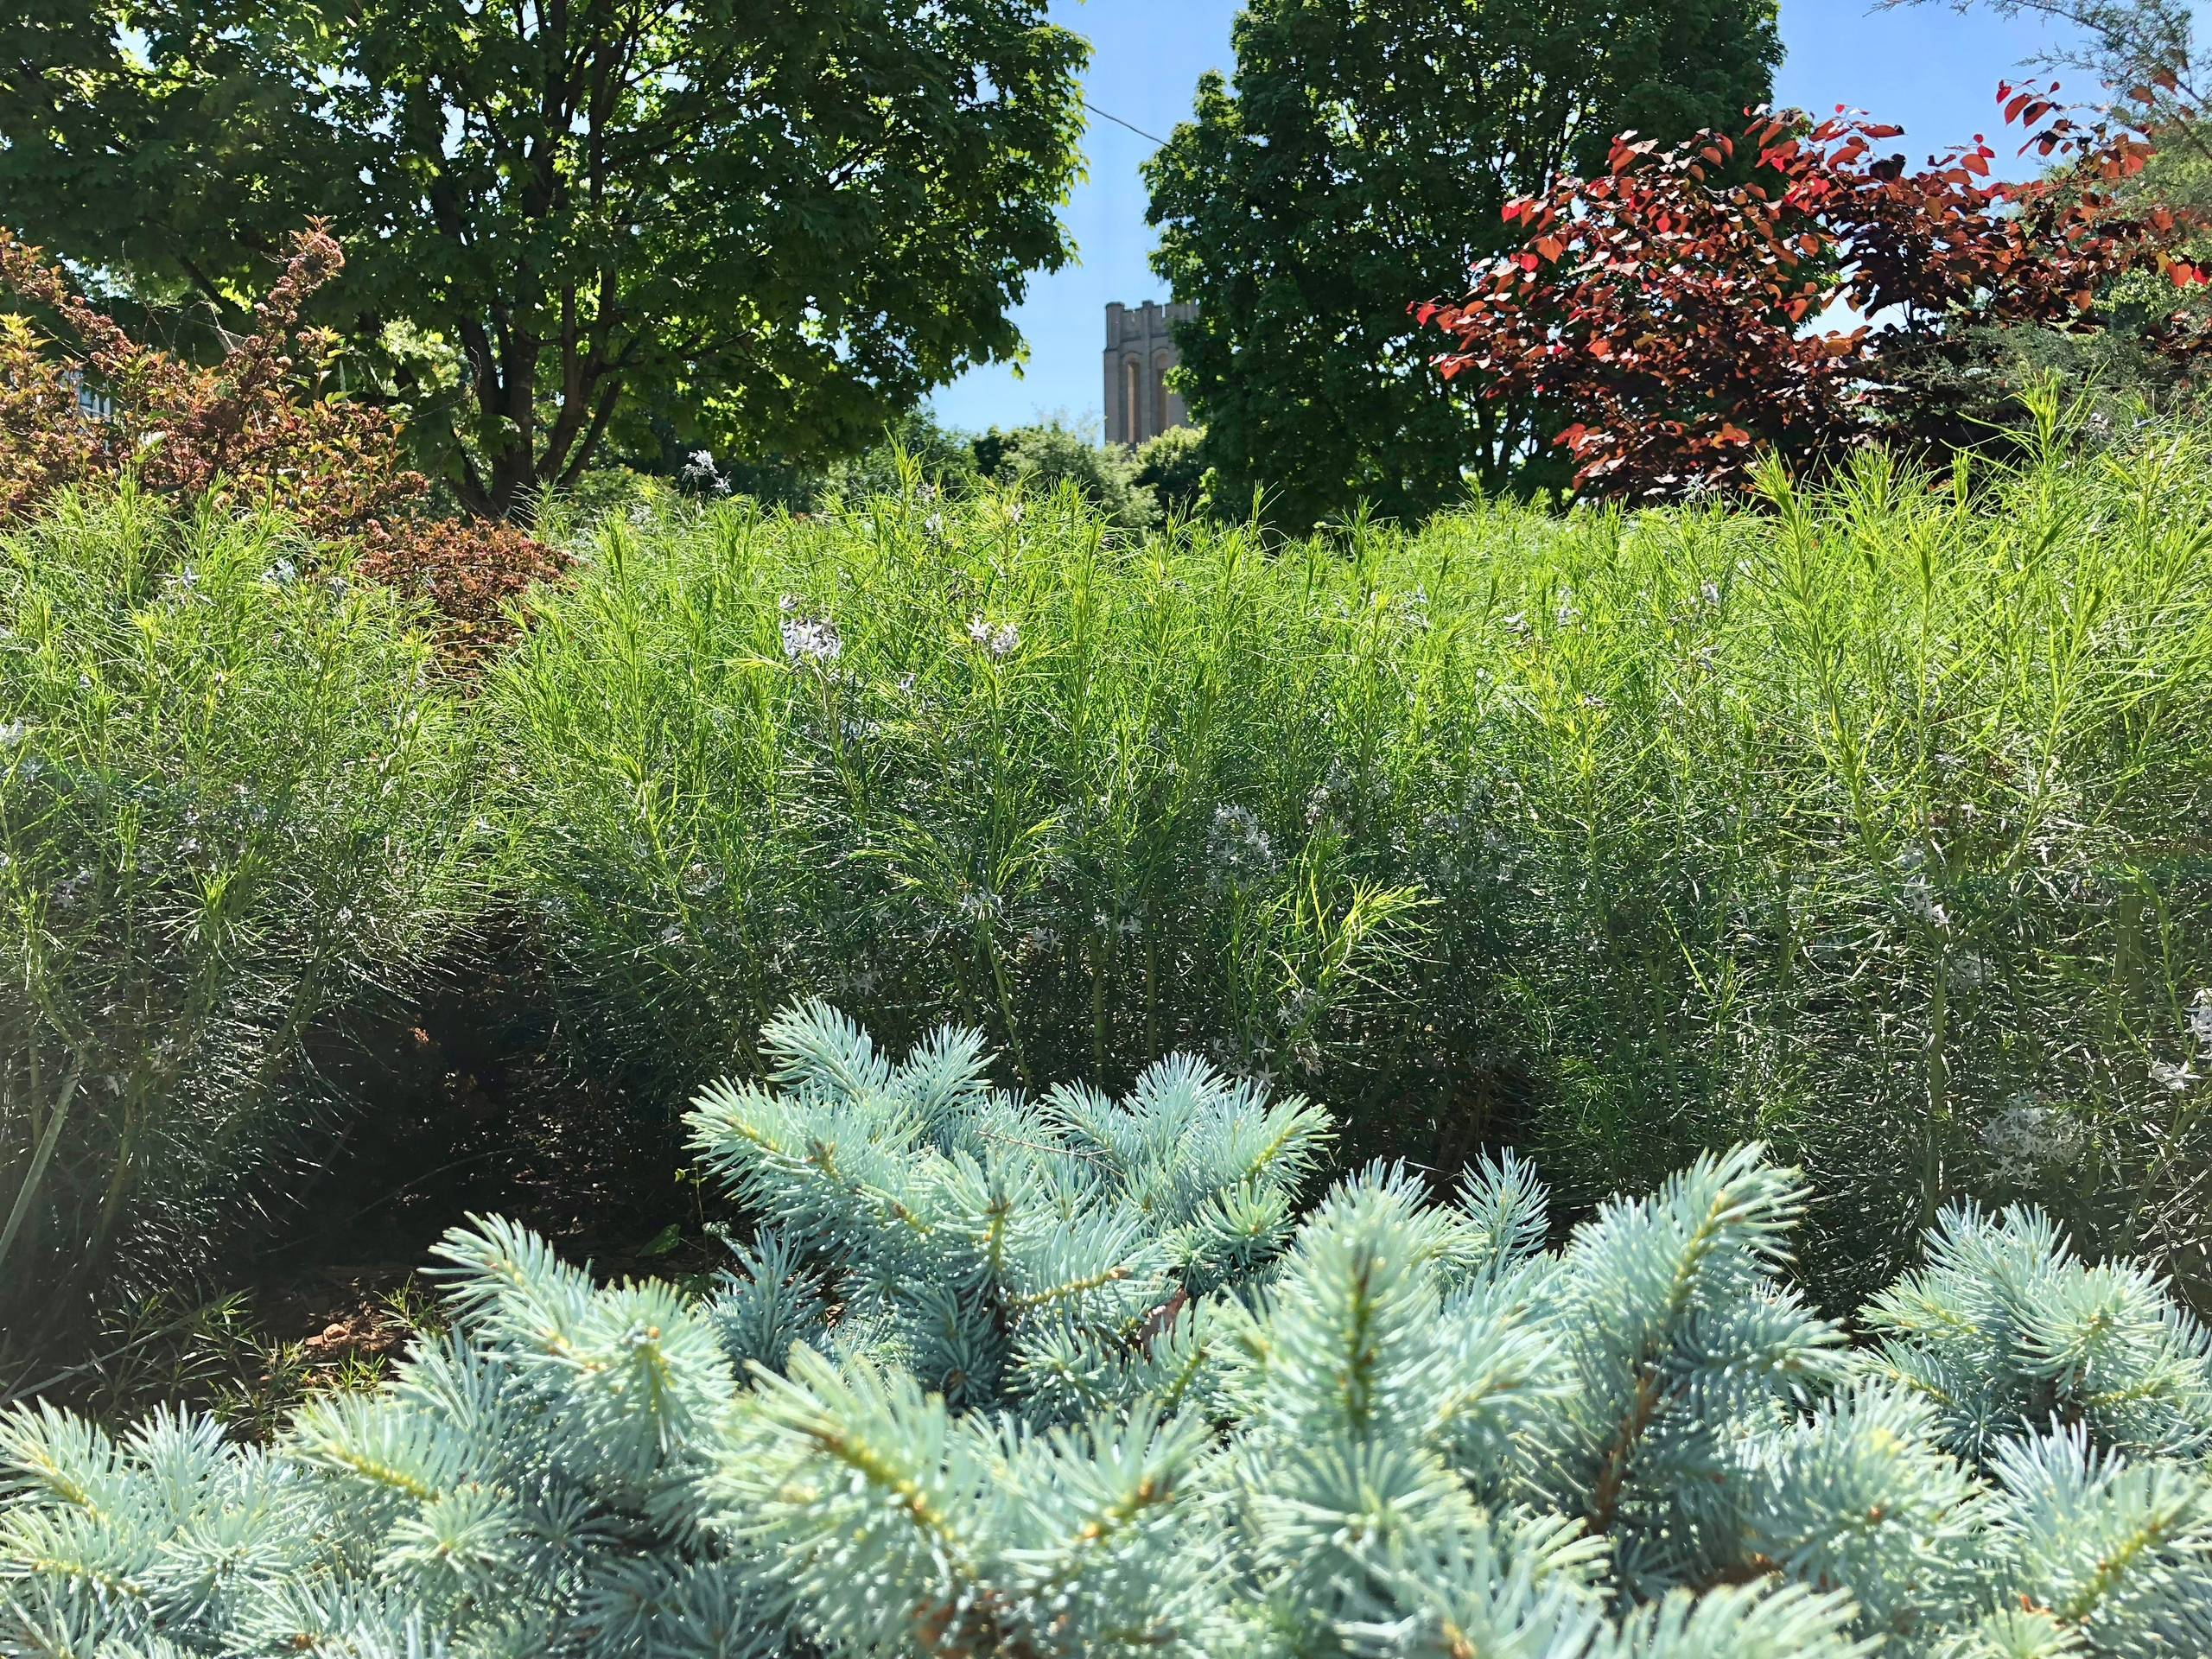 Blue spruce and amsonia in a city oasis.